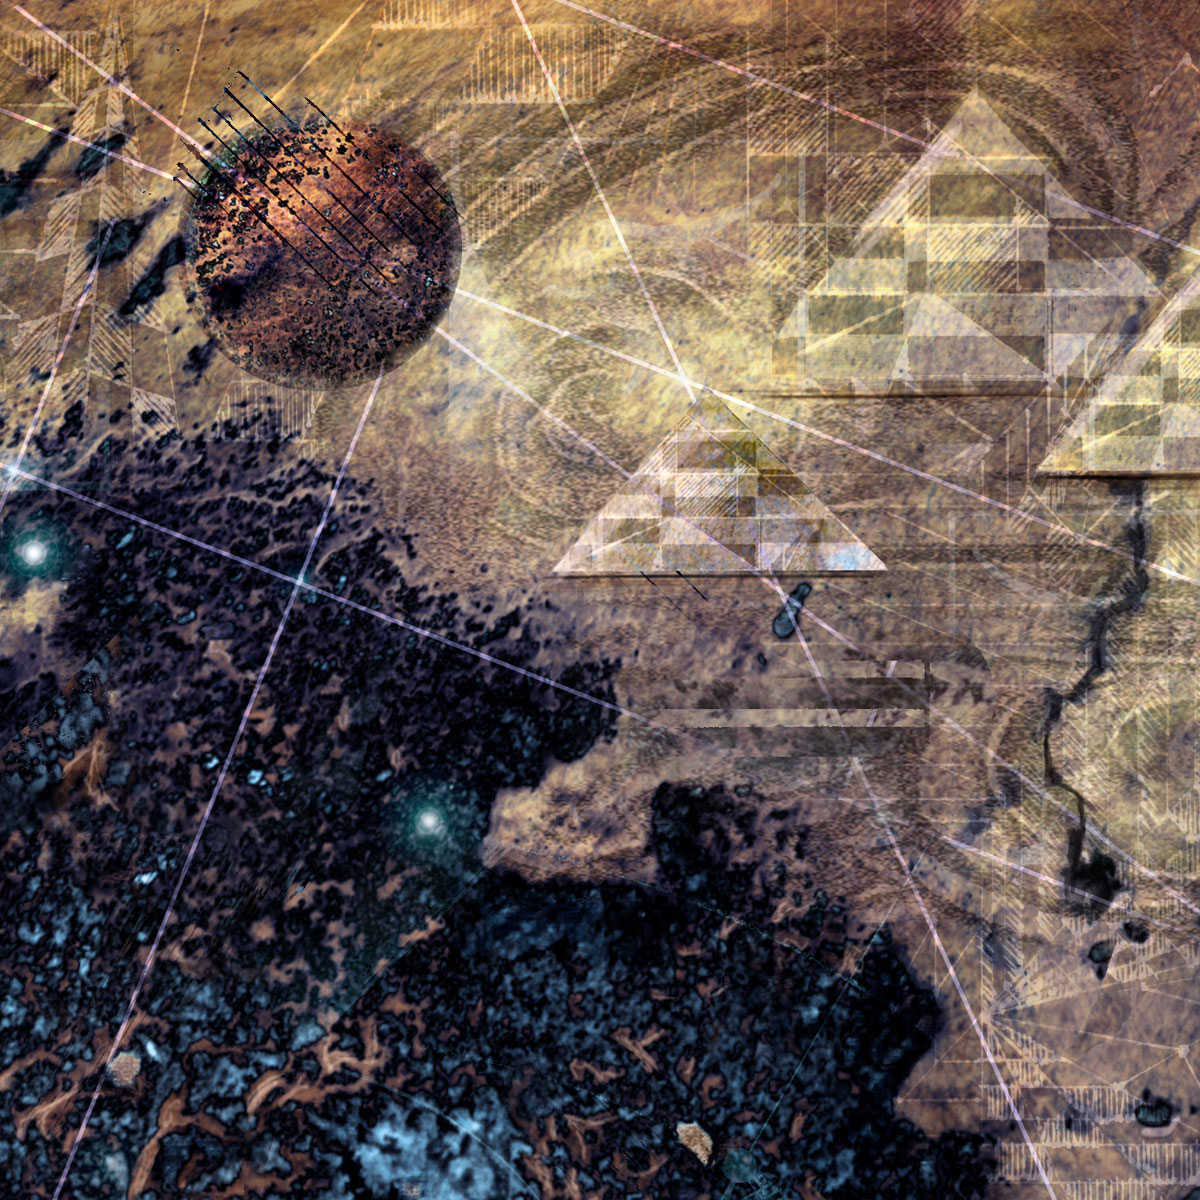 The Cartography of Lost Civilizations